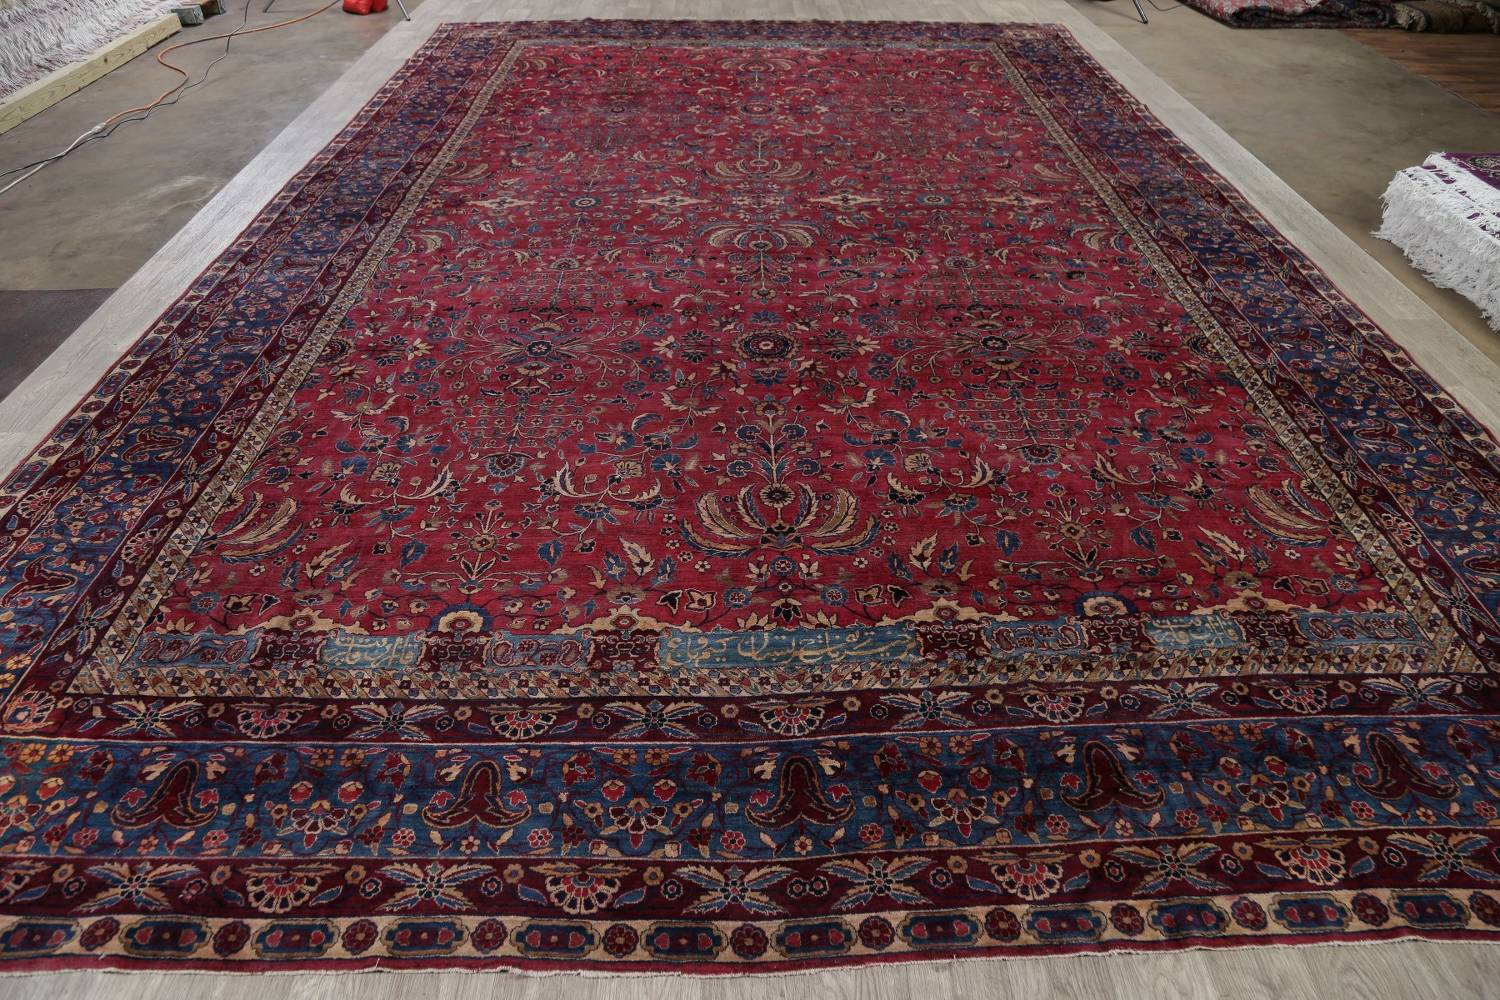 Pre-1900 Antique Floral Sultanabad Persian Hand-Knotted 12x18 Wool Rug image 24